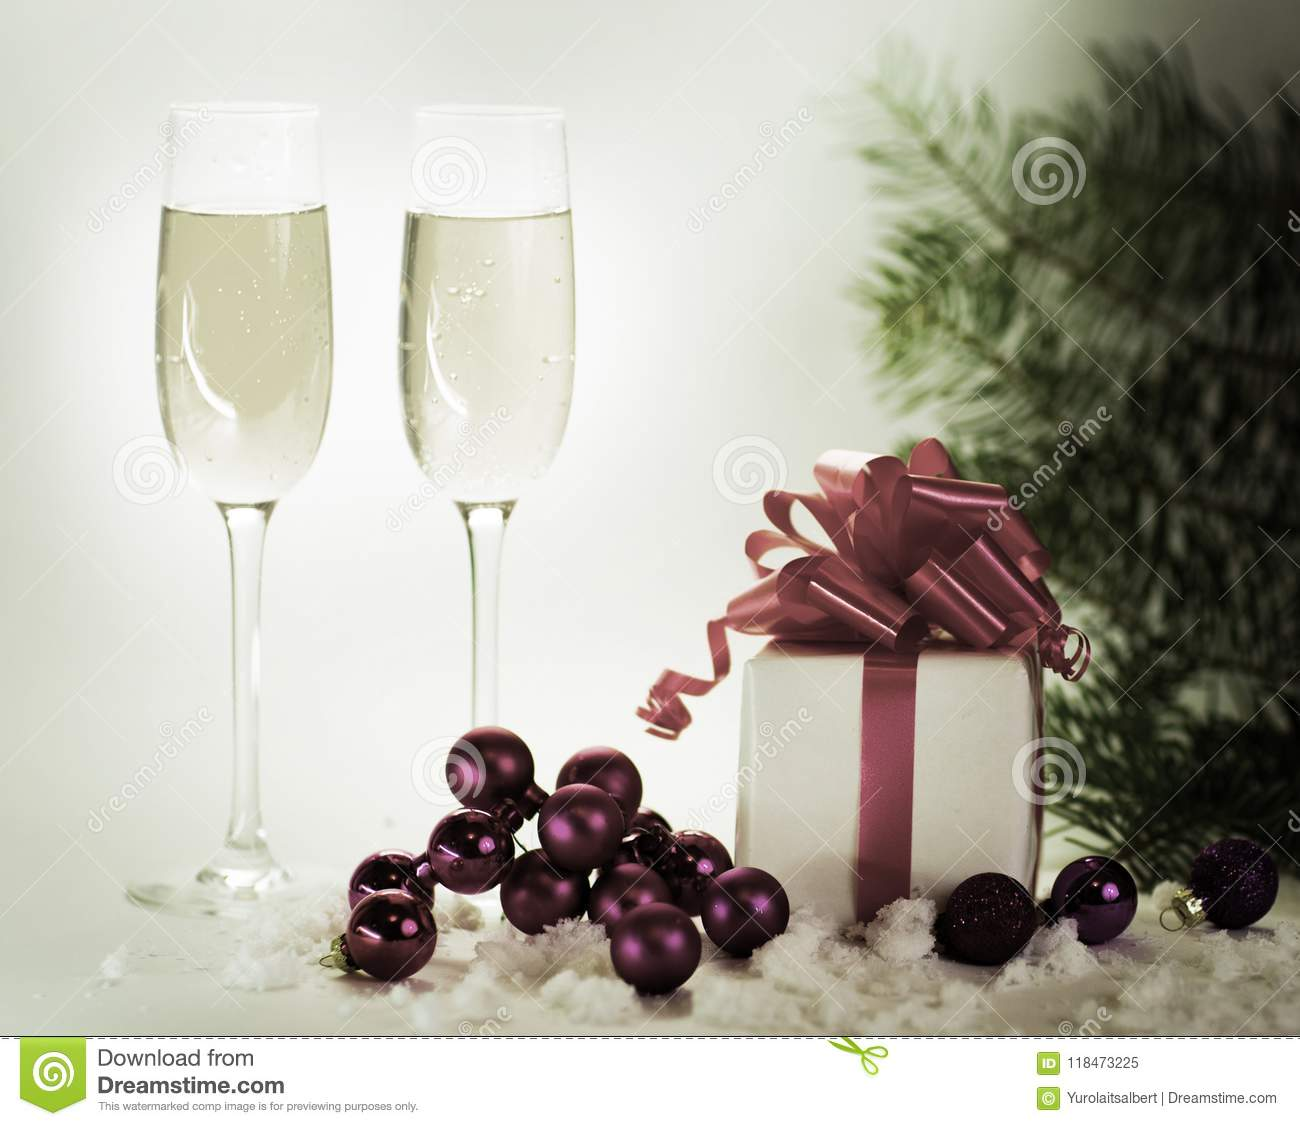 Two glasses of champagne with gifts ready to bring in the New Year